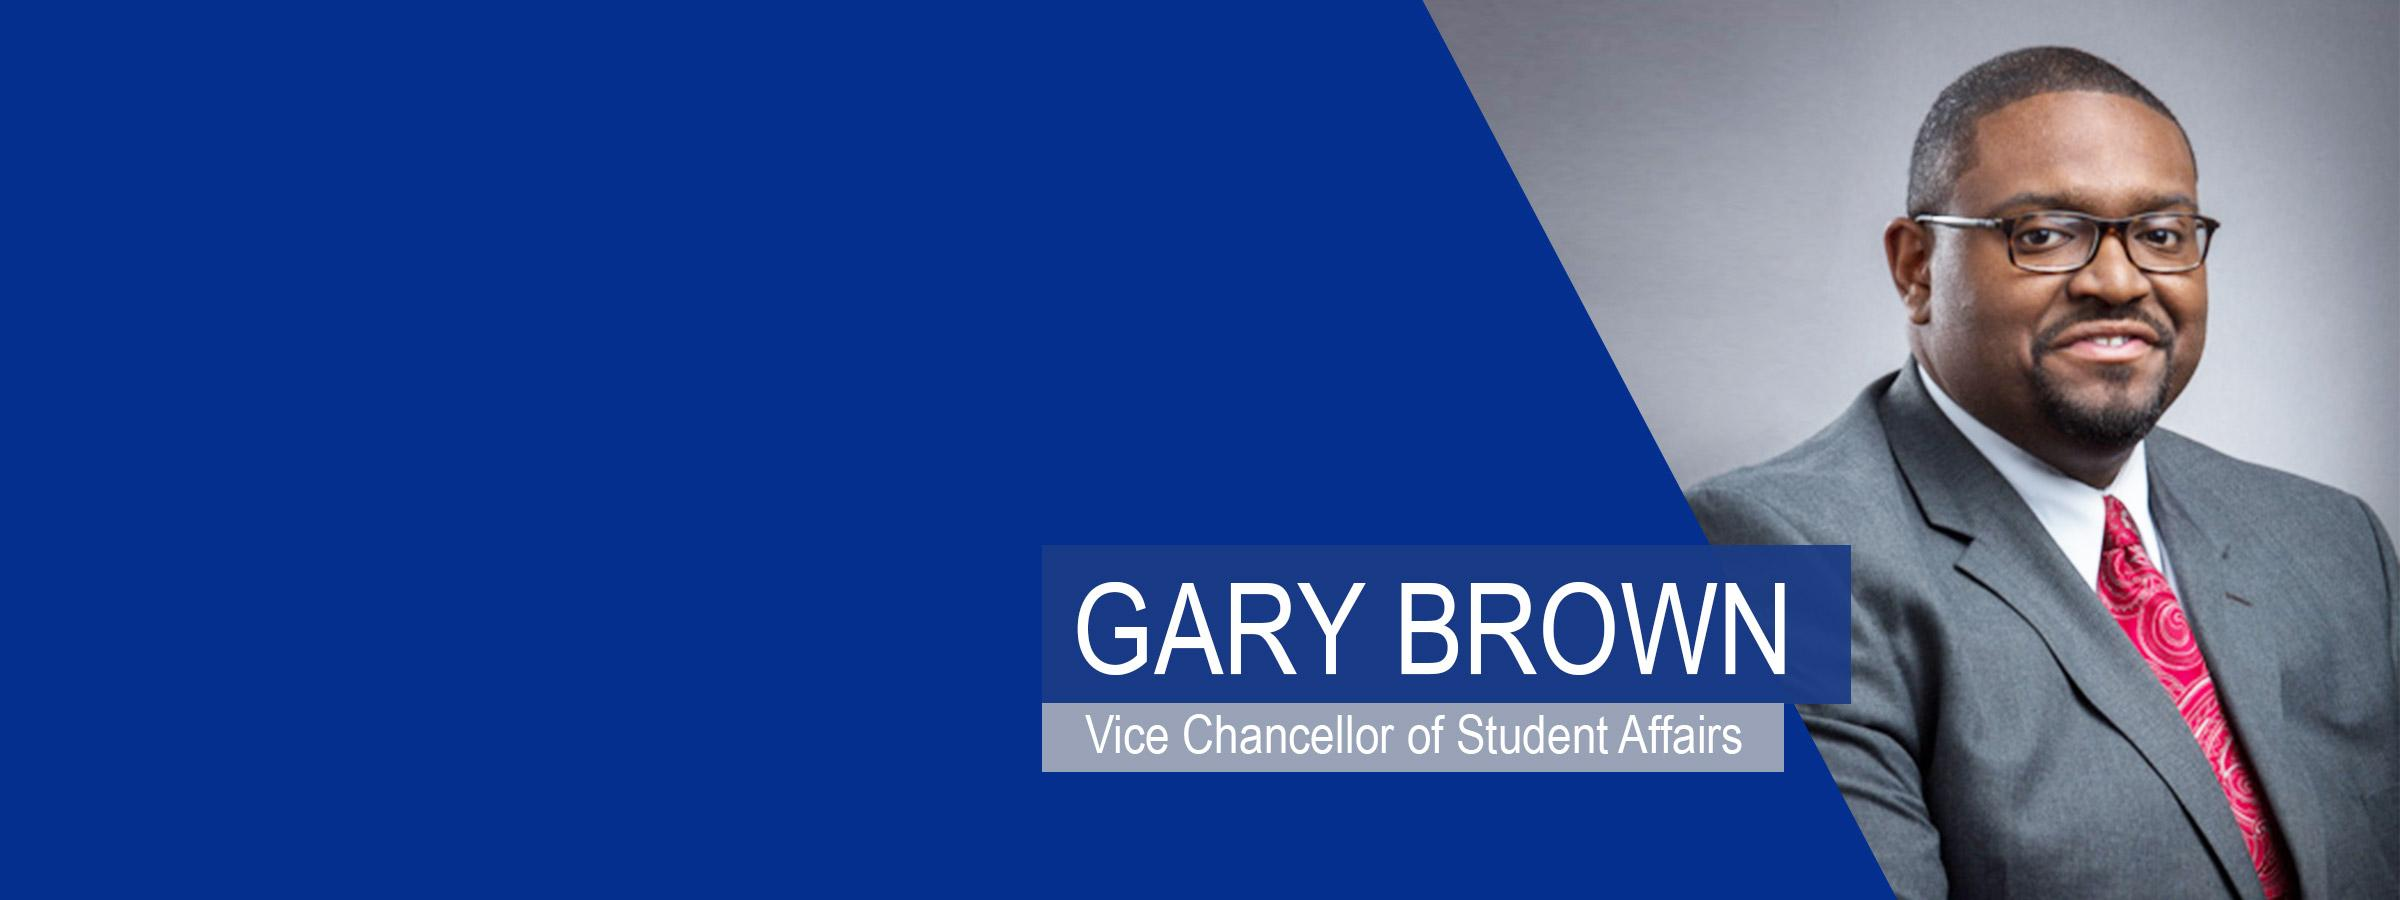 ECSU Welcomes Gary Brown